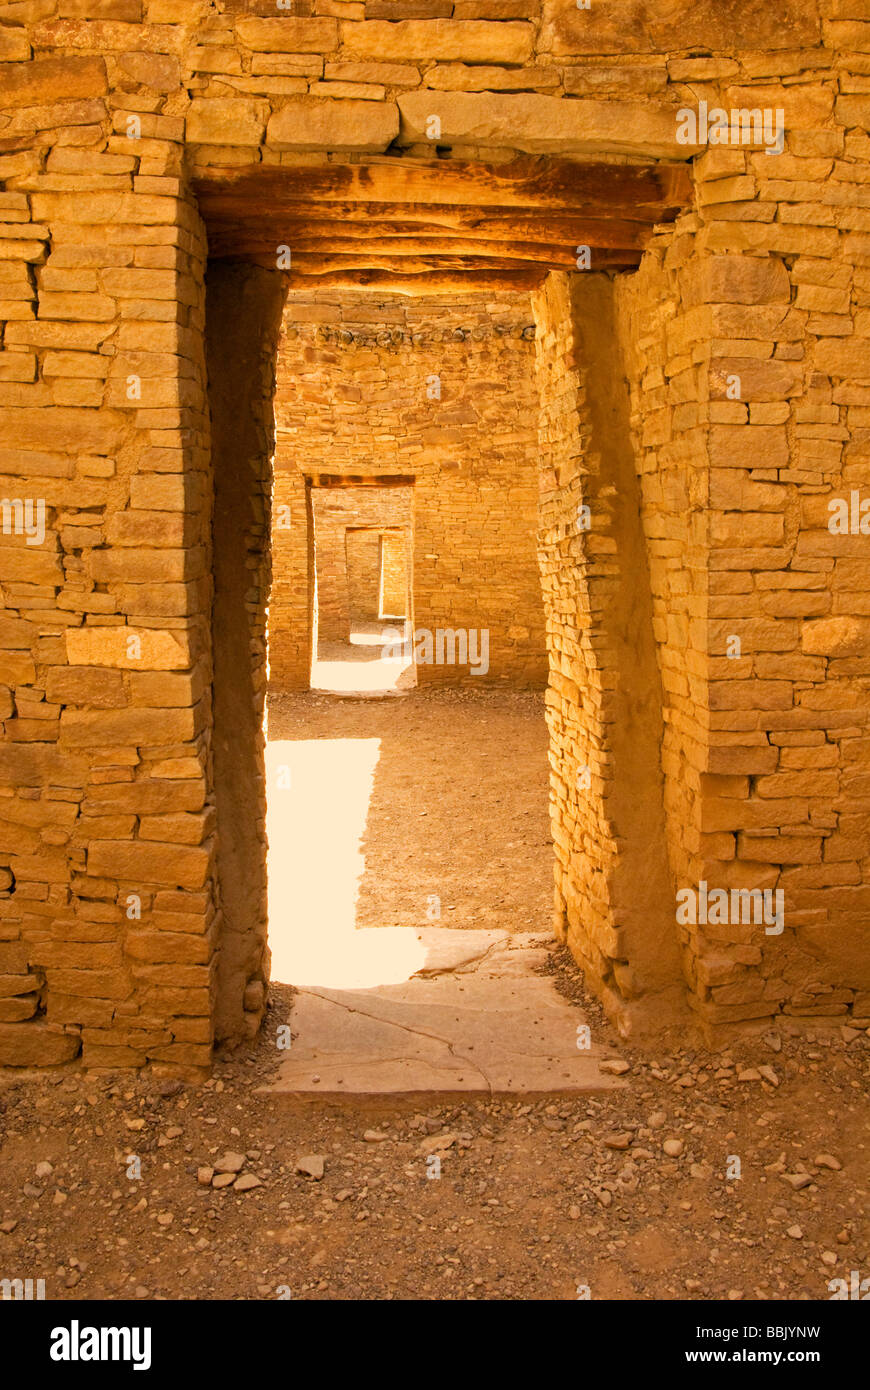 USA New Mexico Chaco Culture National Historical Park Pueblo Bonito interior doors through rooms chacoan stone Stock Photo